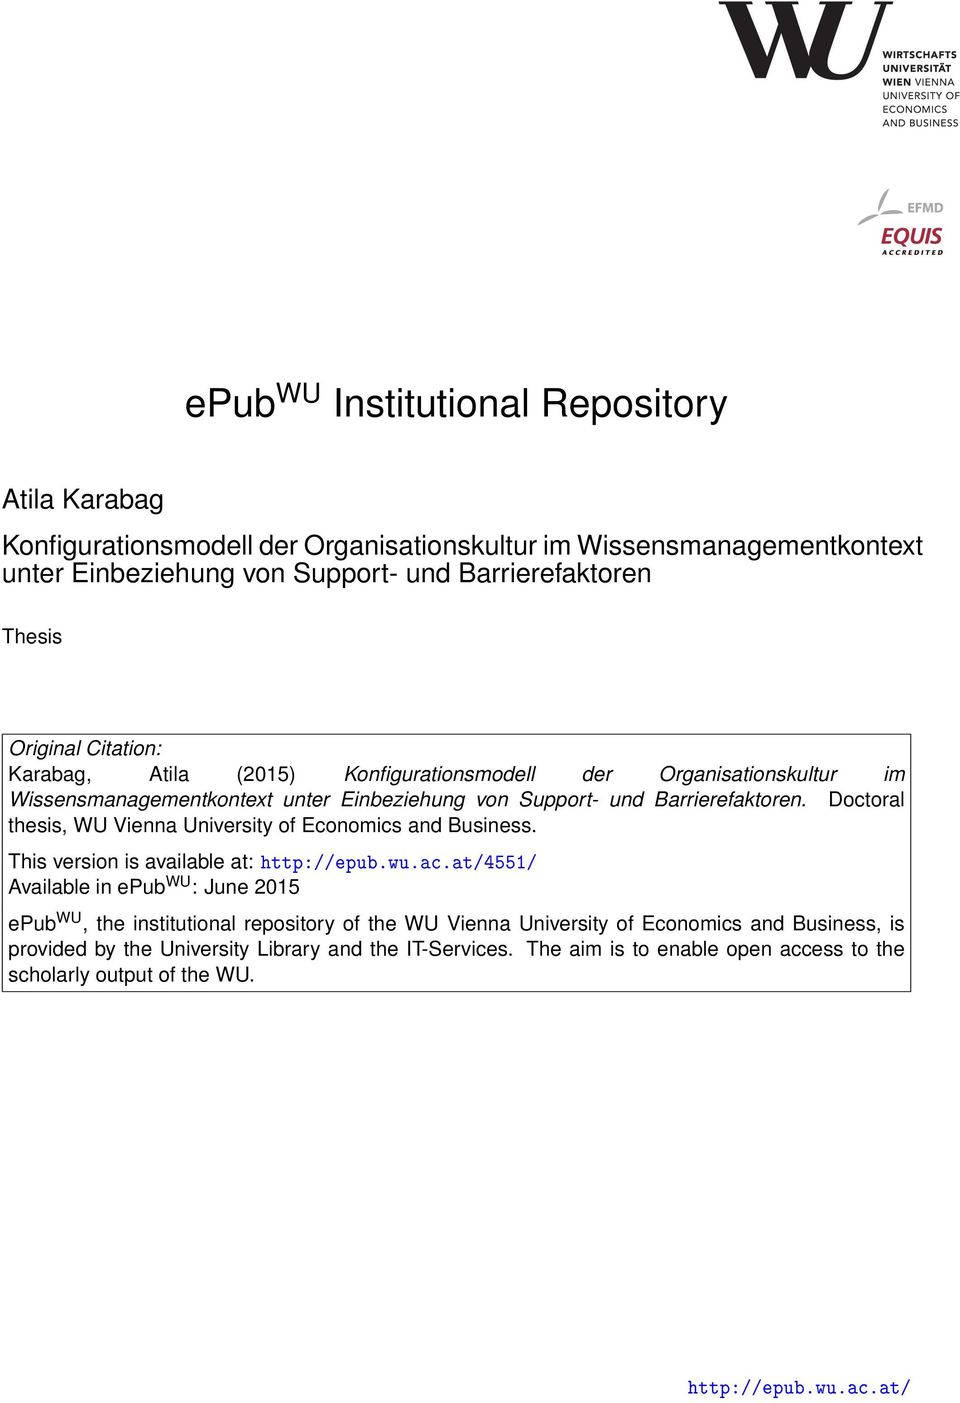 Doctoral thesis, WU Vienna University of Economics and Business. This version is available at: http://epub.wu.ac.